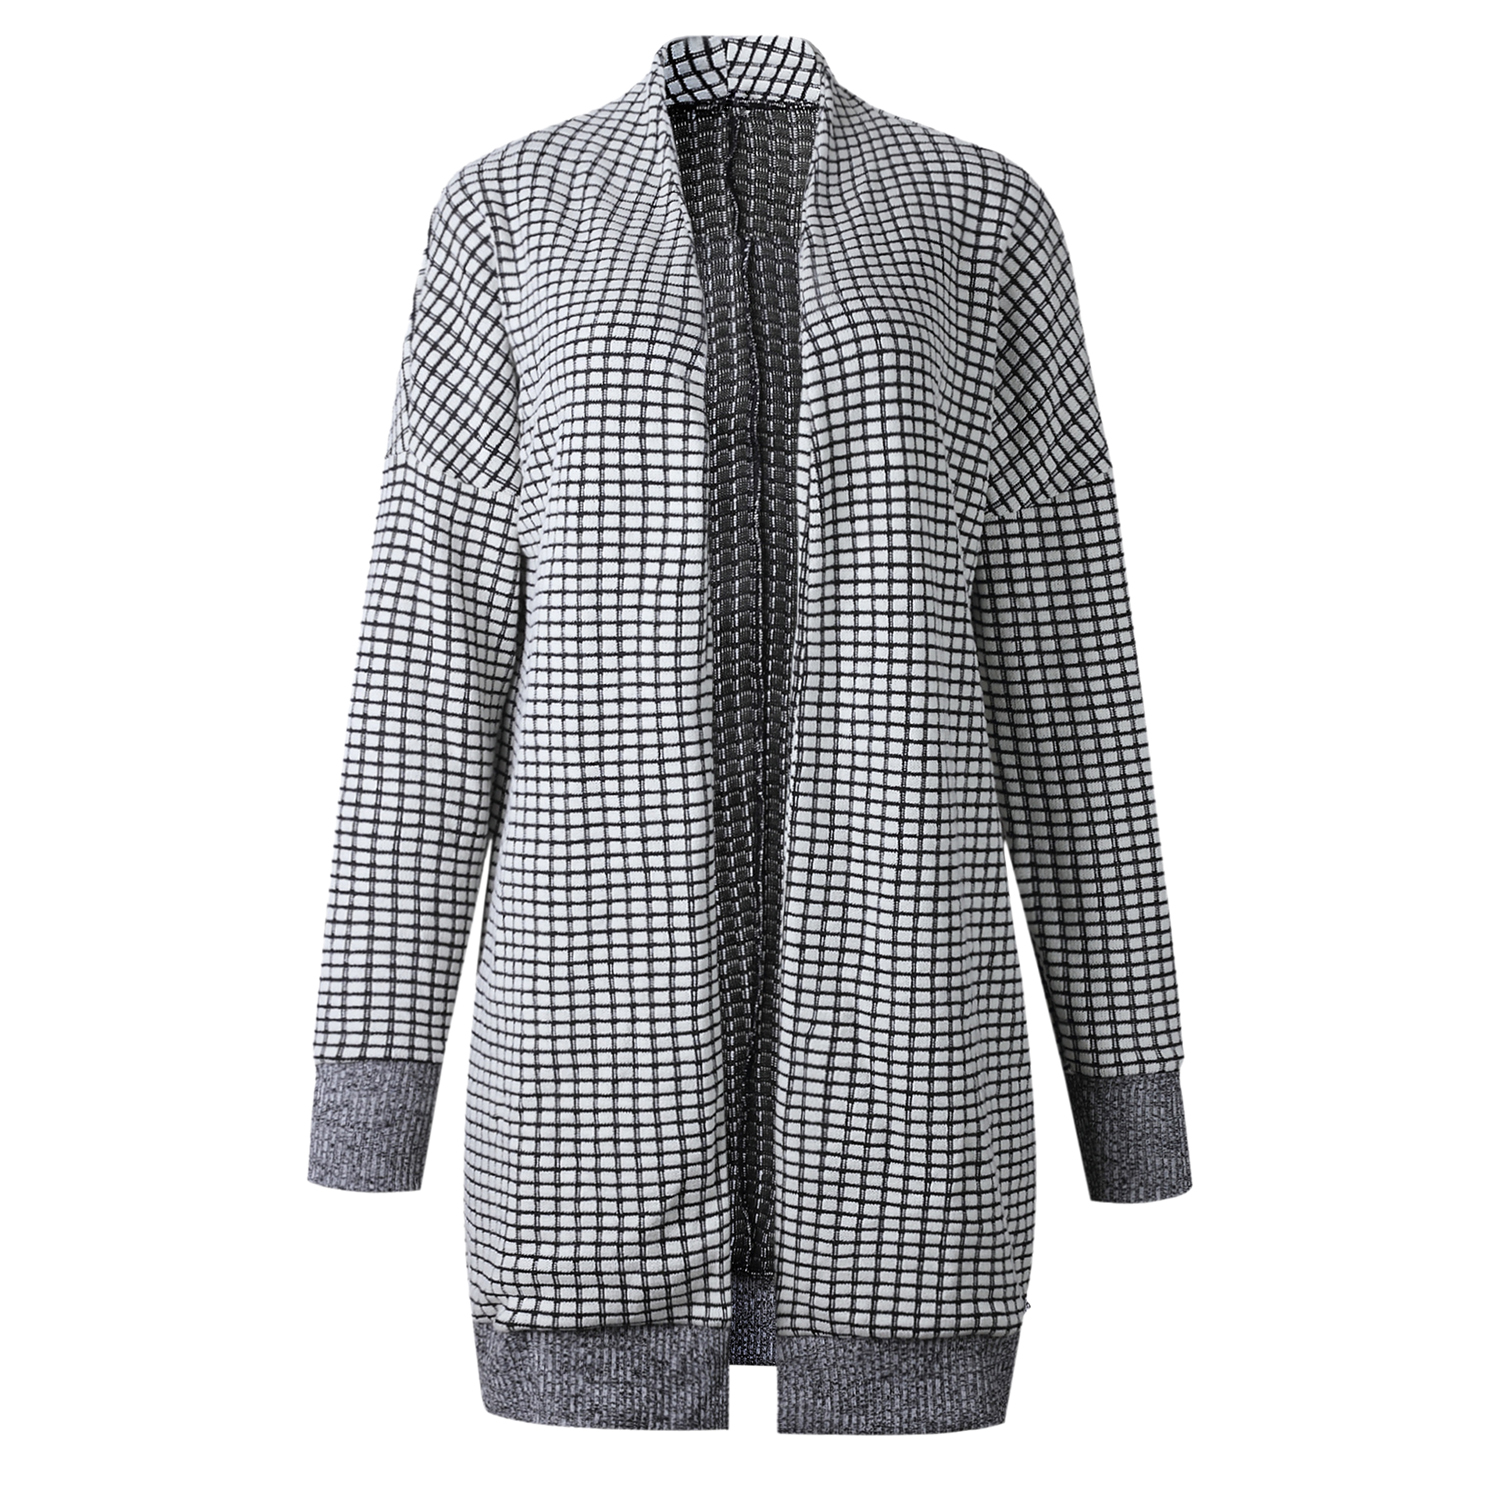 Women Fashion Check Long Cardigan Coat Jacket Ladies Casual Autumn Long Sleeve Coat Outwear Women Tops Black and white grid 5